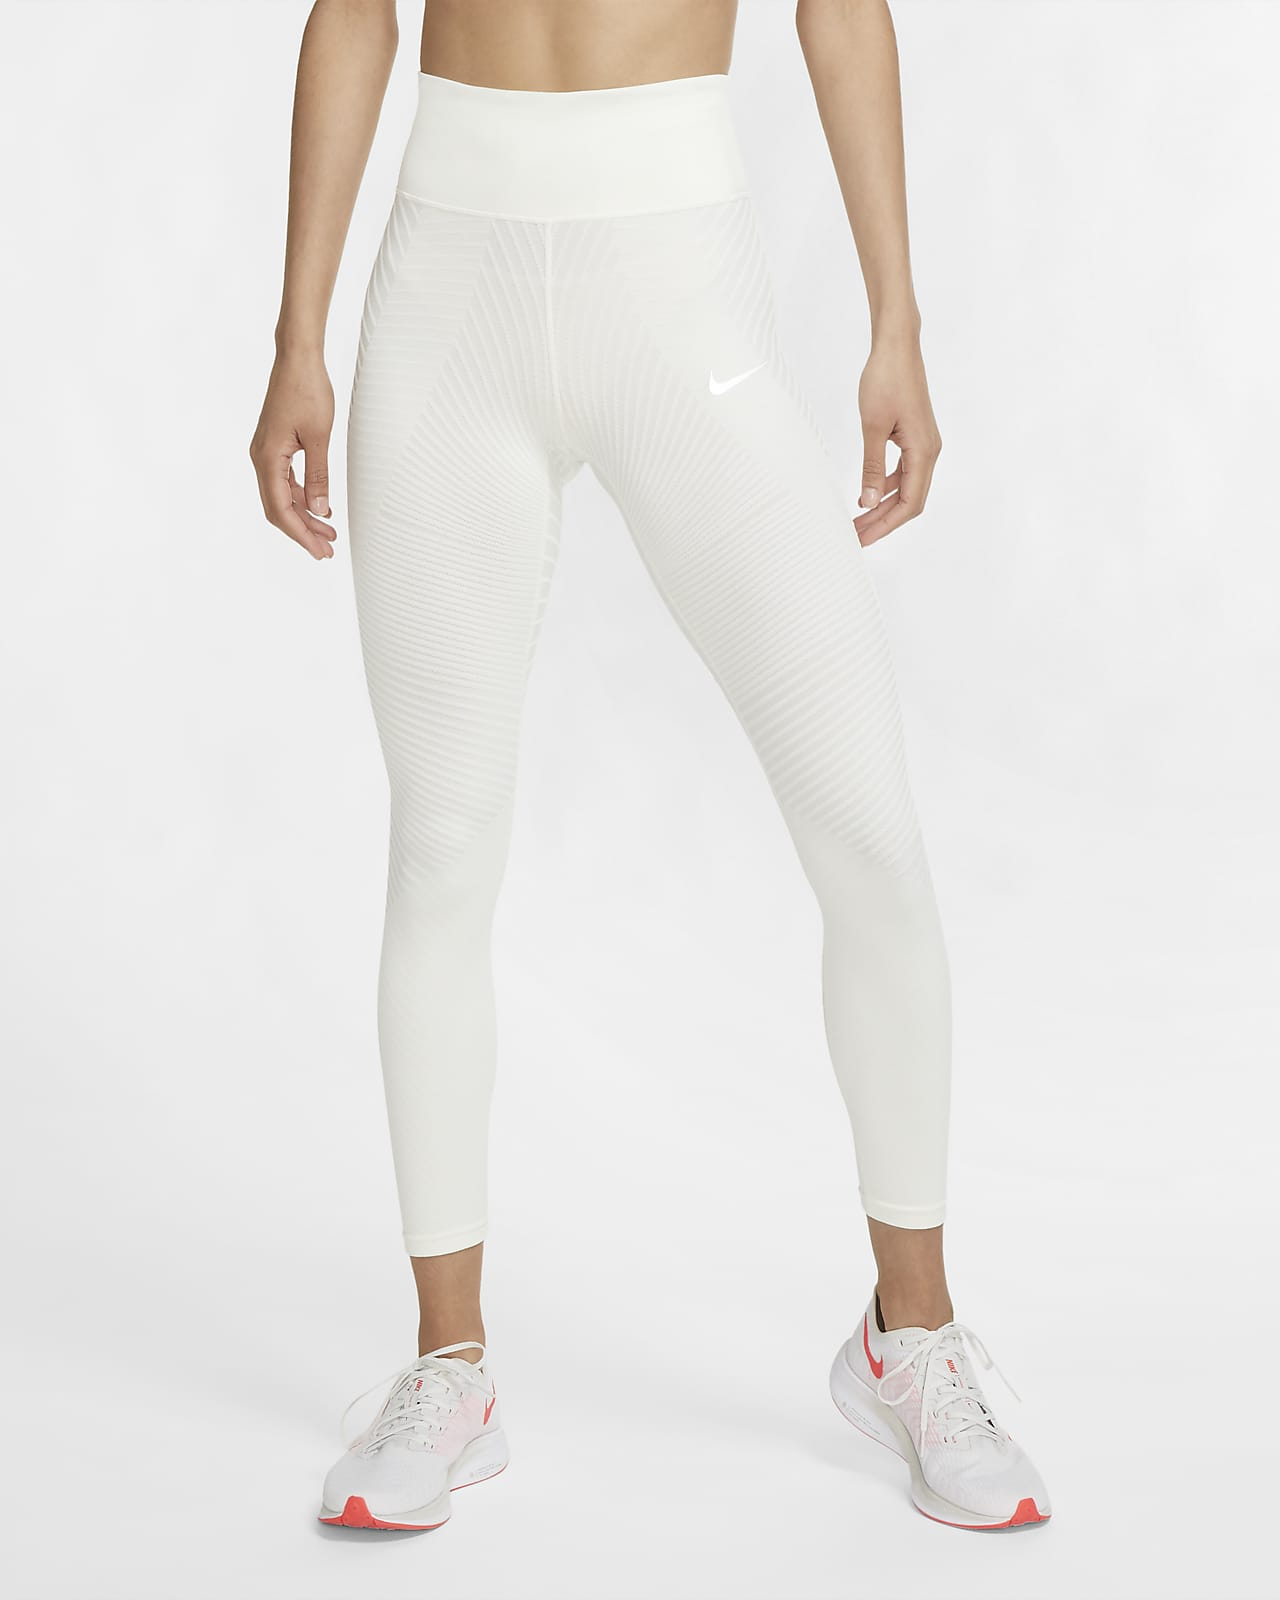 Nike Epic Luxe Women's Tights